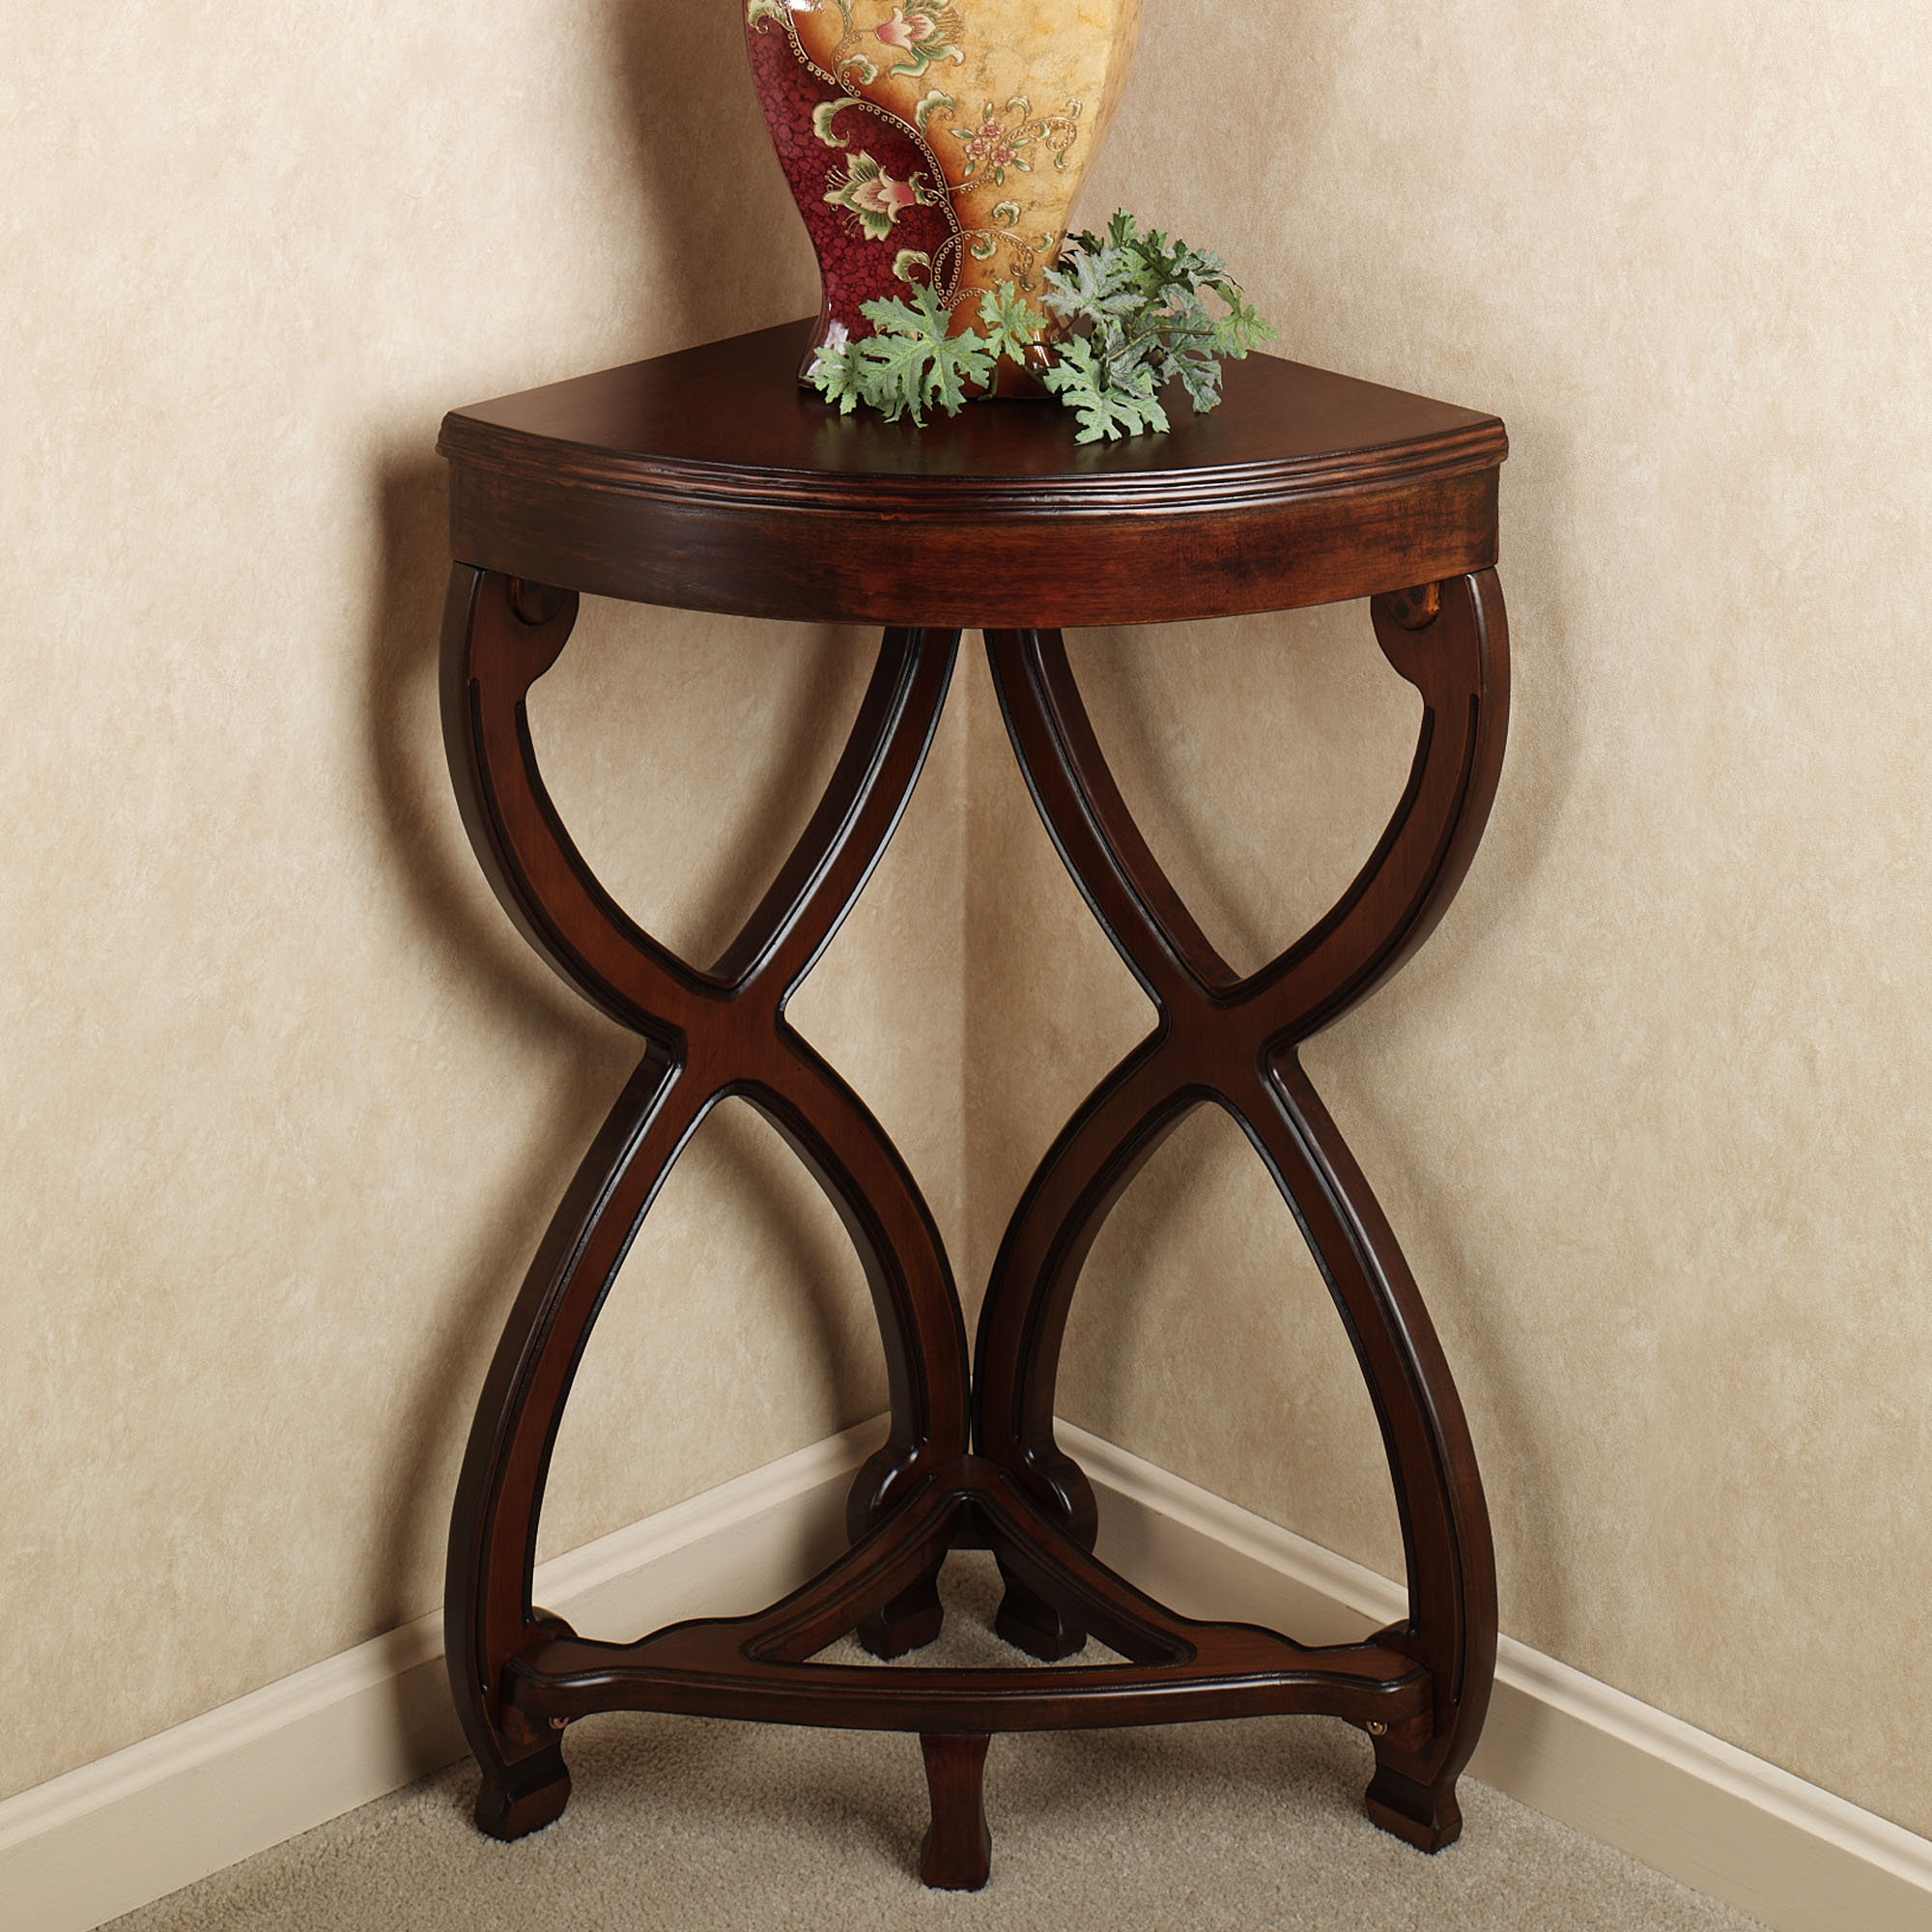 Image of: corner accent table black